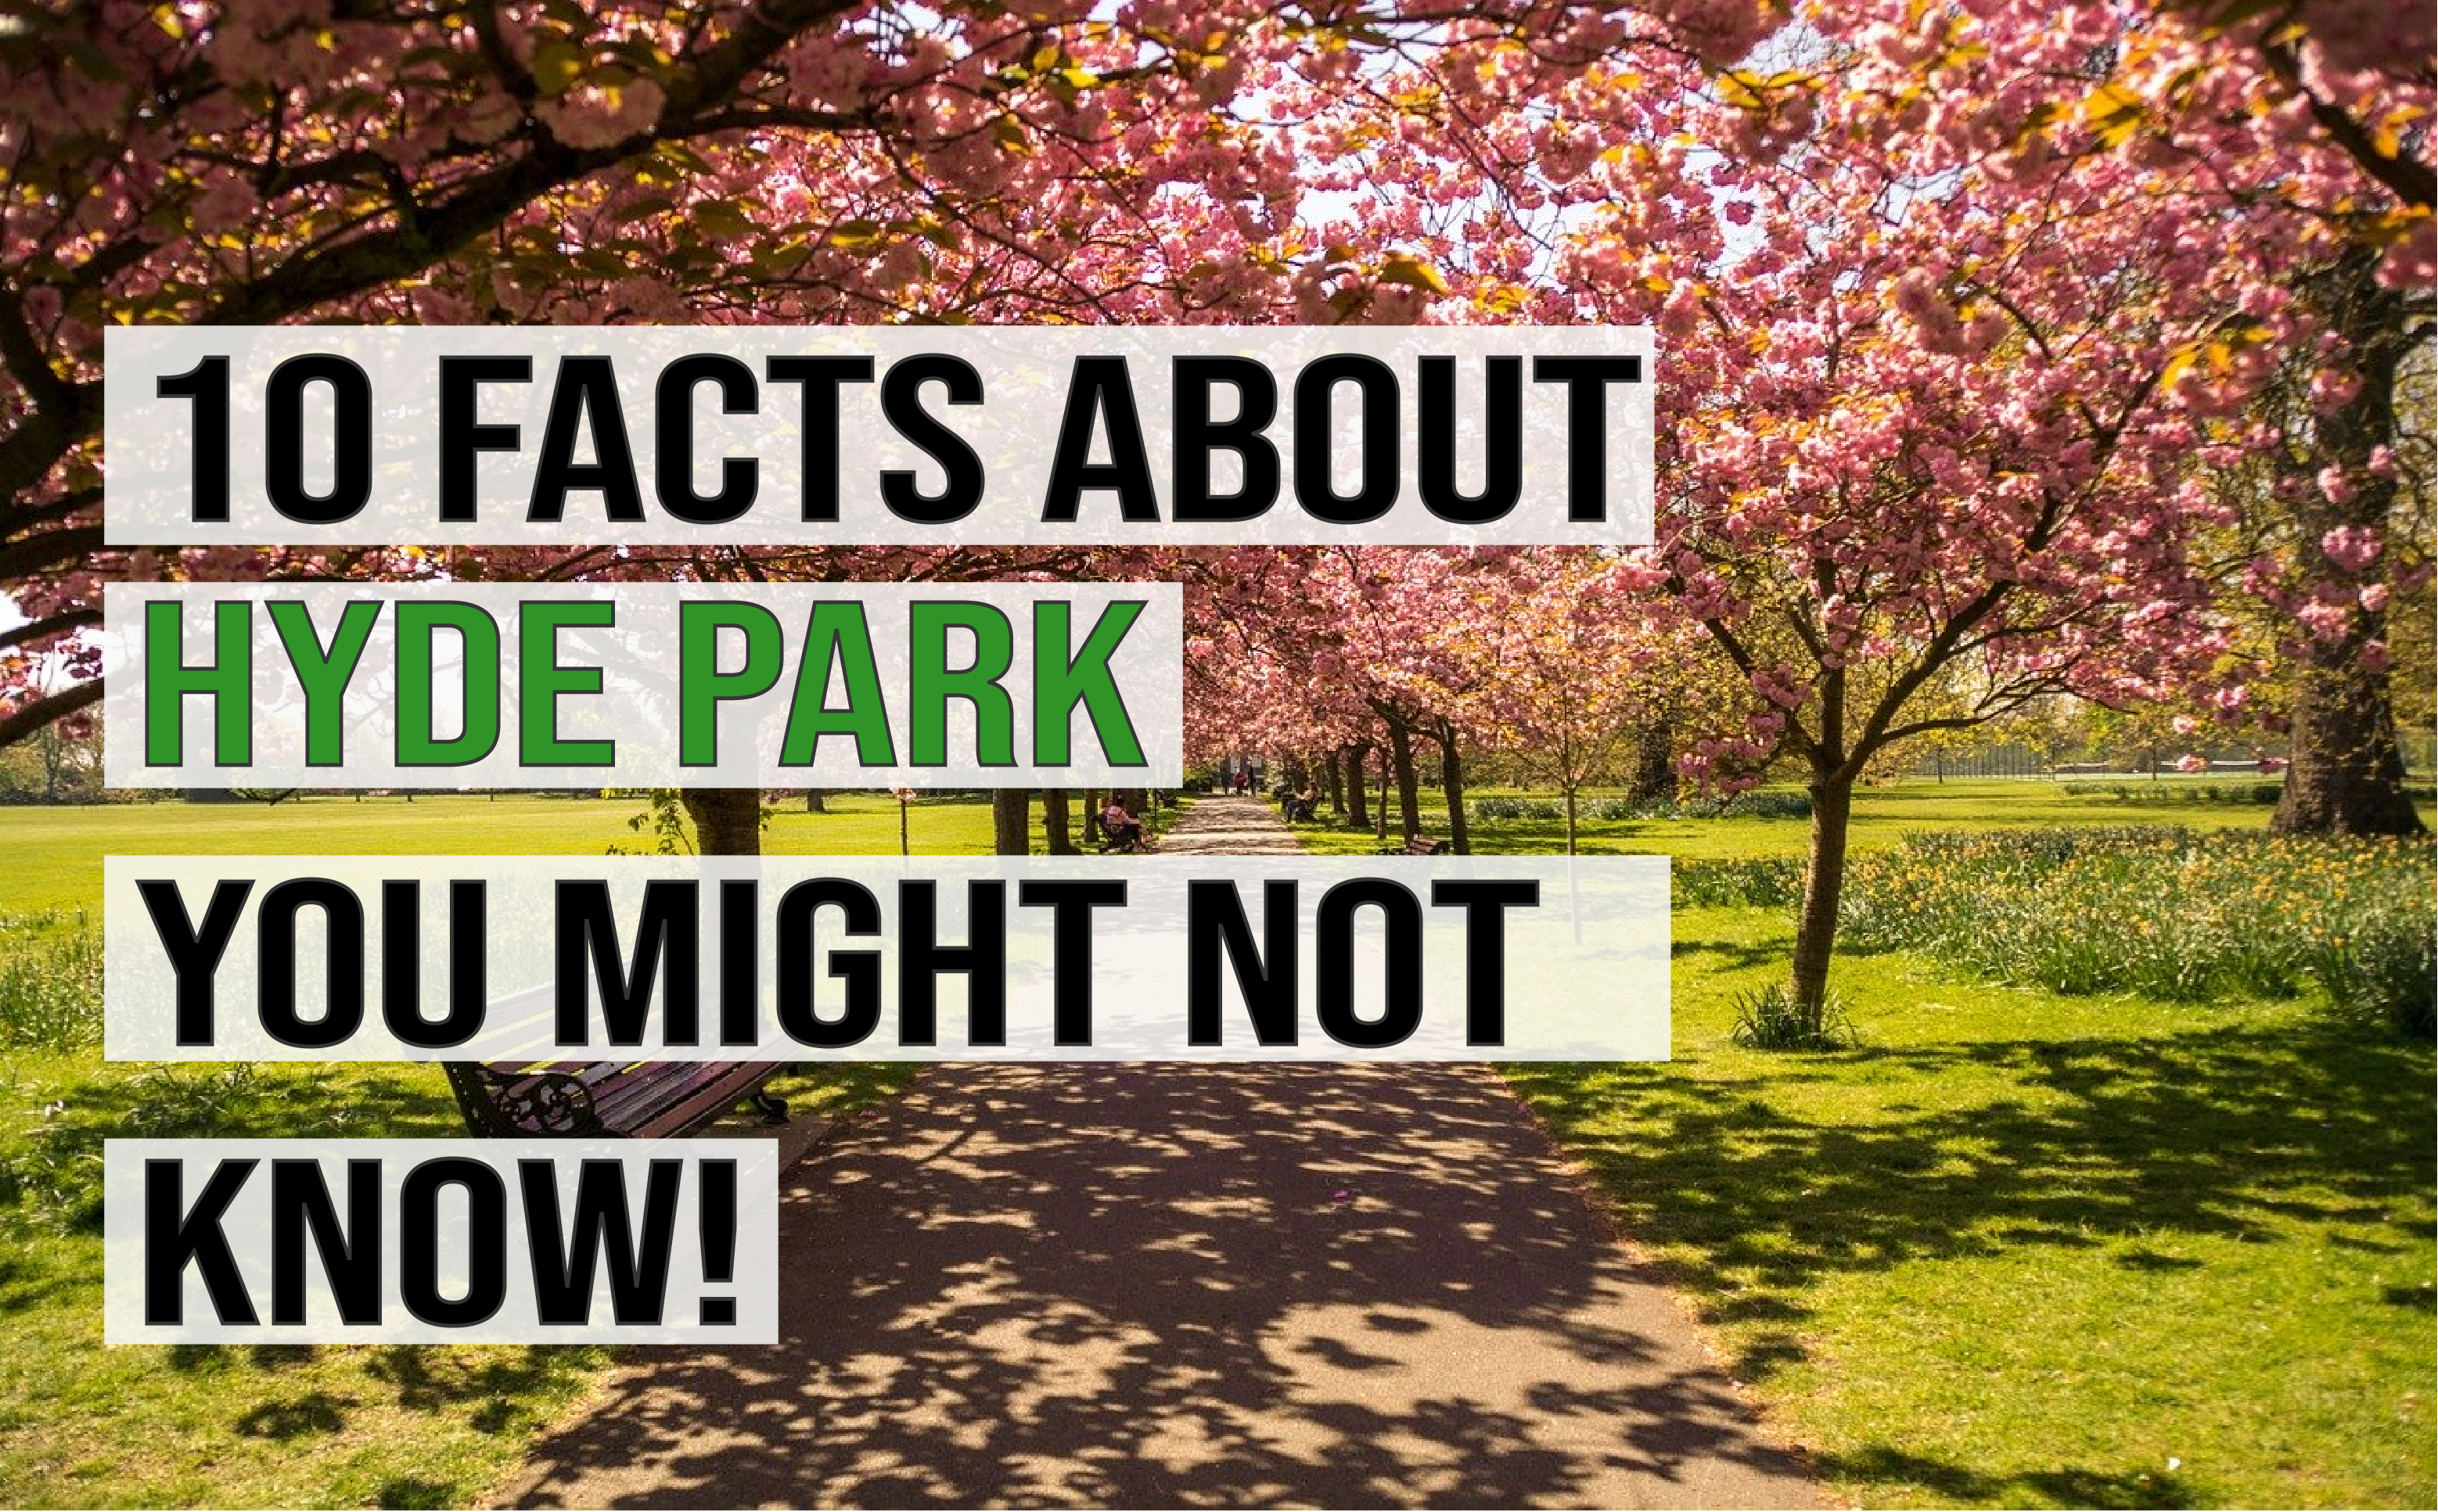 10 Facts about Hyde Park that you might not know!